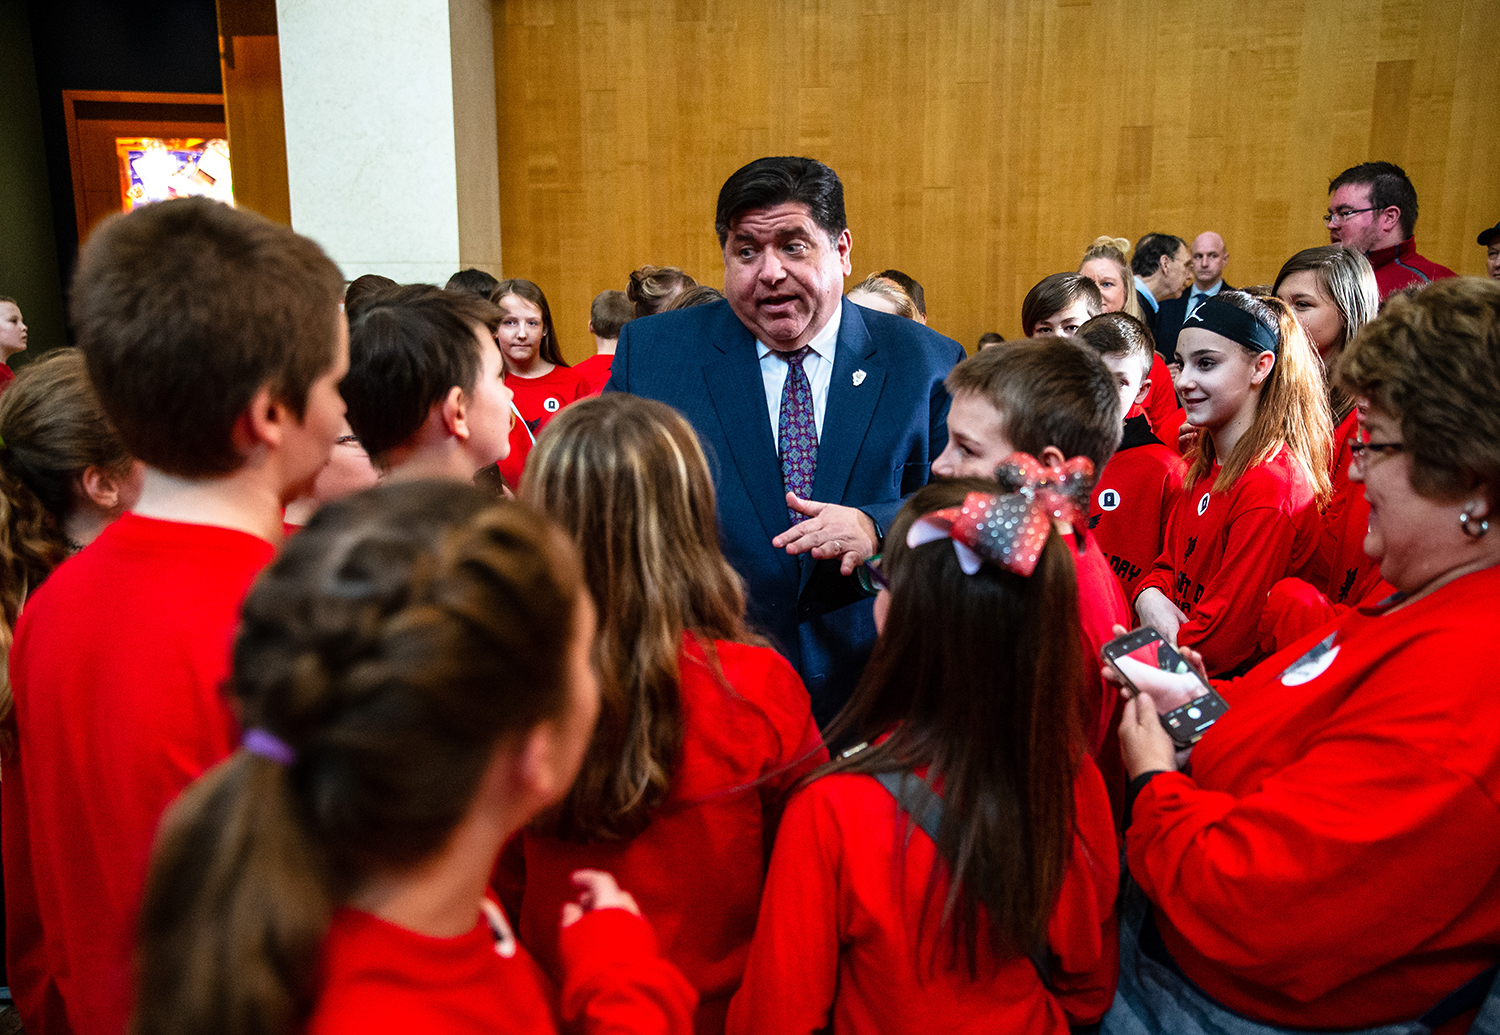 Illinois Governor J.B. Pritzker visits with a school from Sandoval Grade School during a celebration of Abraham Lincoln's 210th birthday at the Abraham Lincoln Presidential Museum, Tuesday, Feb. 12, 2019, in Springfield, Ill. [Justin L. Fowler/The State Journal-Register]